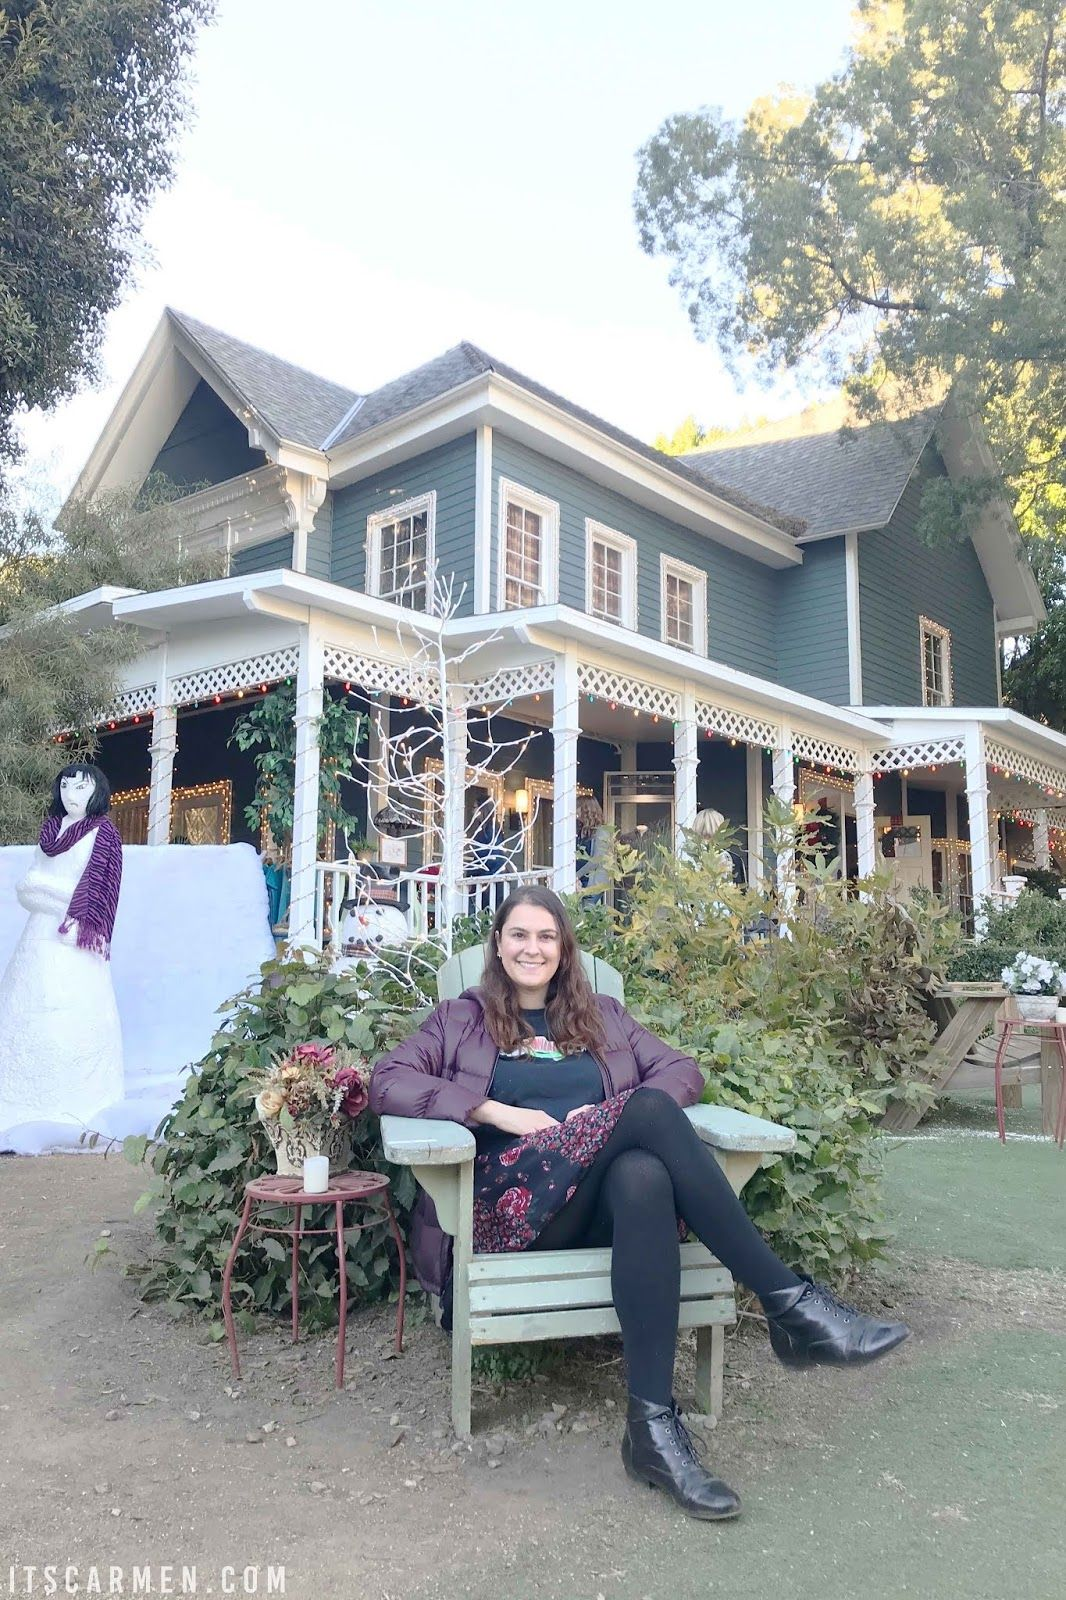 Visiting The Gilmore Girls Location Where Was Gilmore Girls Filmed Where Is Stars Hollow Gilmore Girls House Girl Film Gilmore Girls Fan